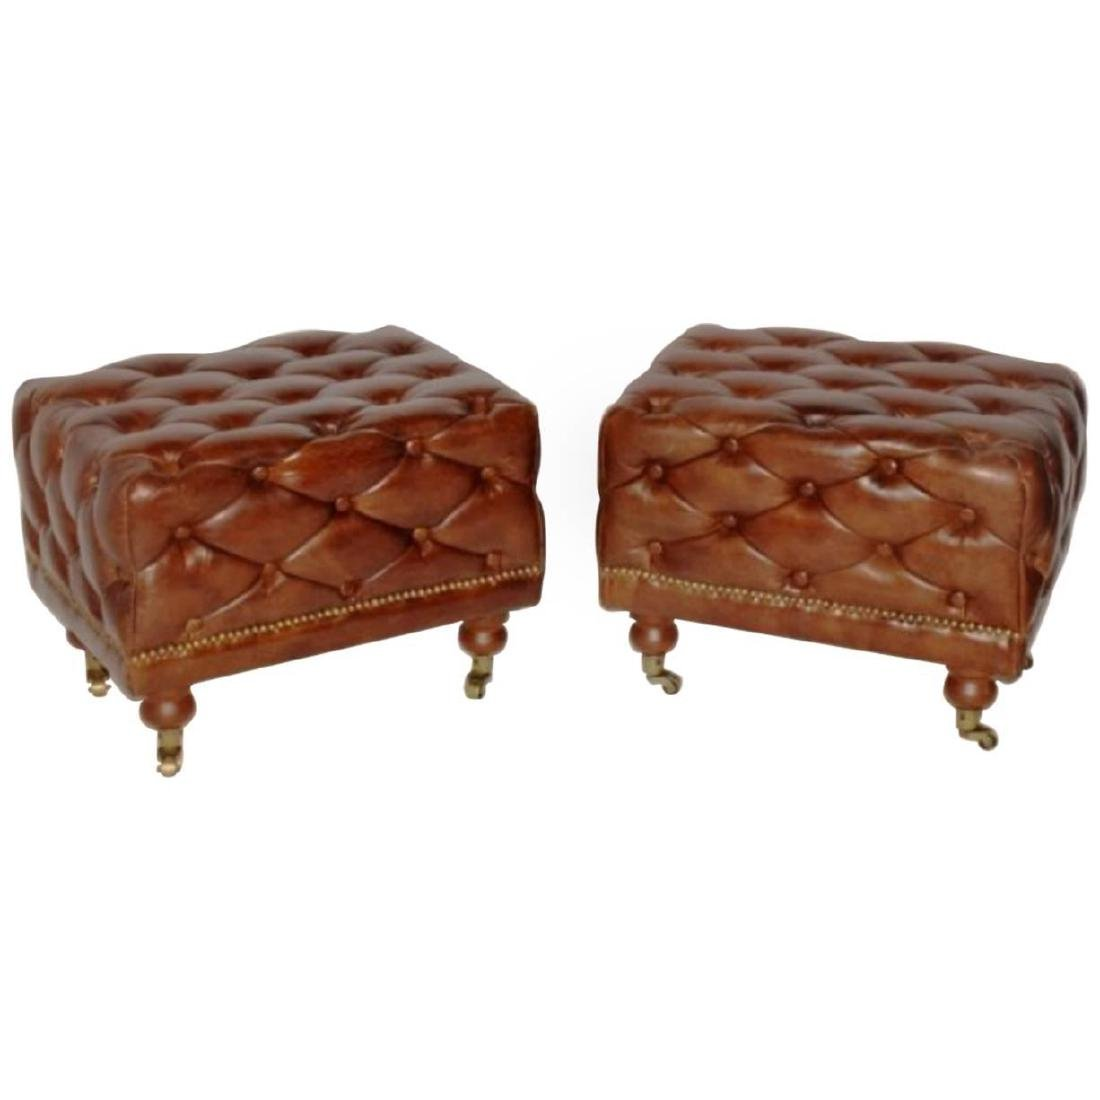 Pair CHESTERFIELD STYLE FOOT STOOLS